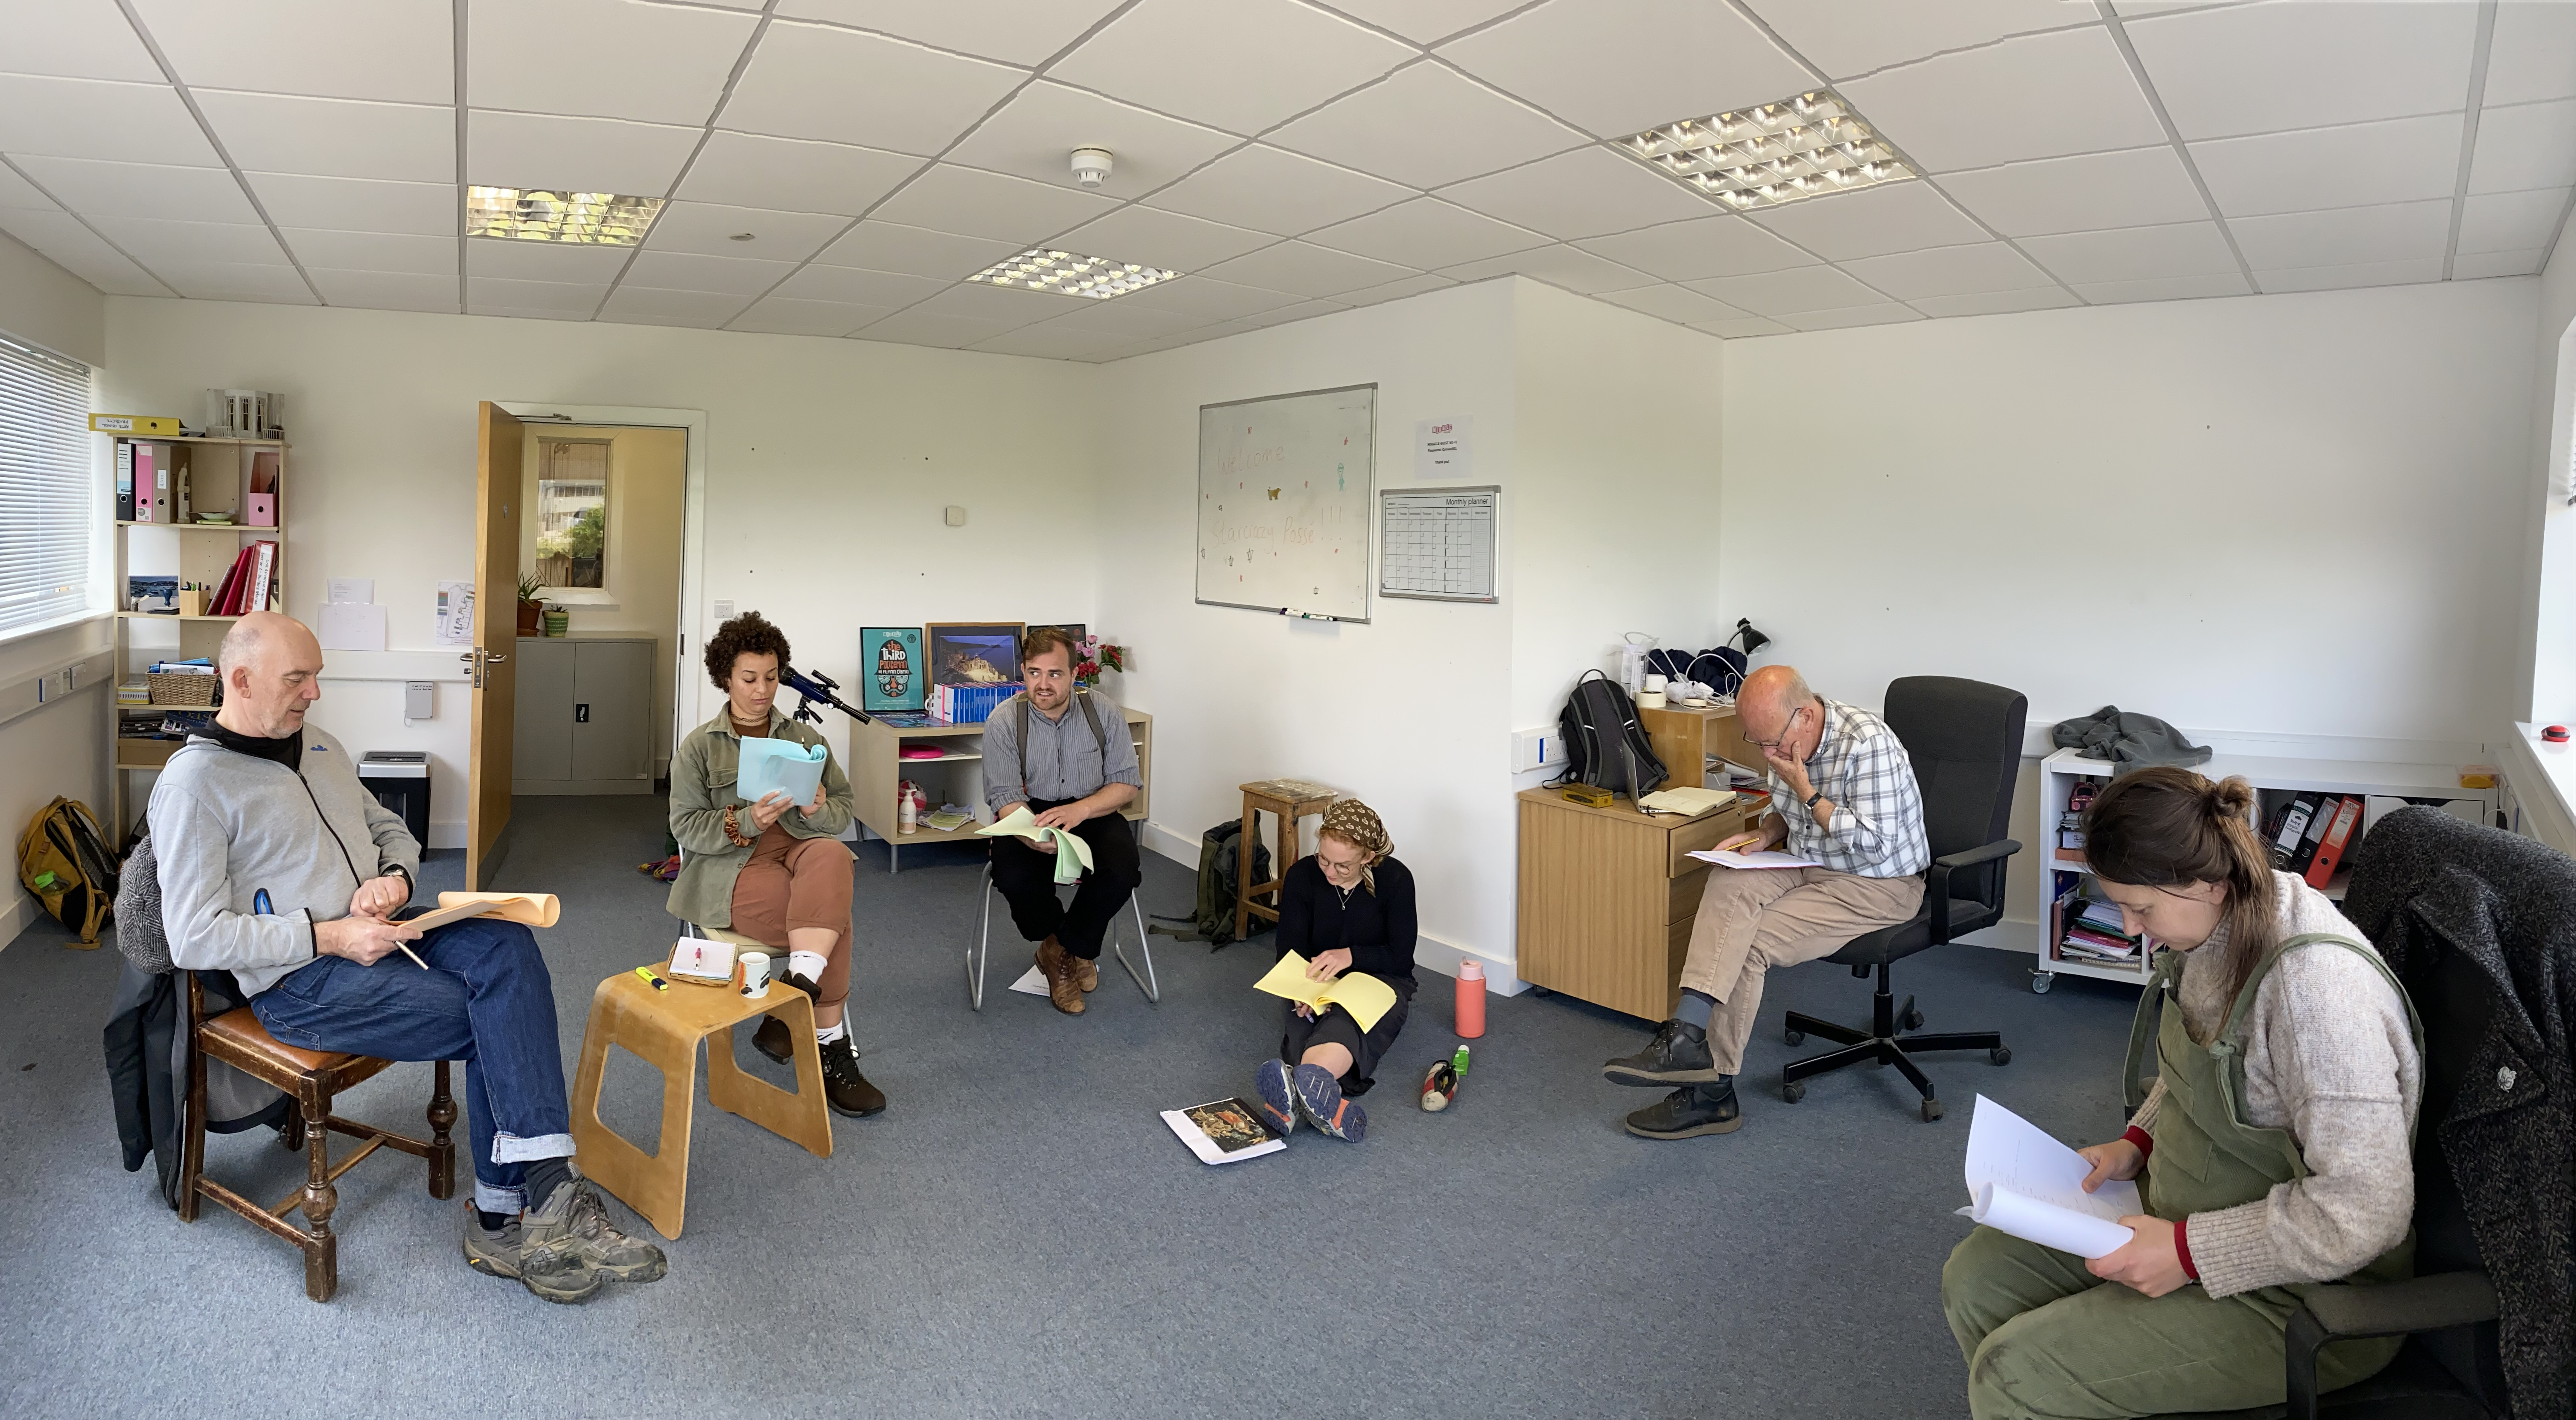 Starcrazy rehearsals in upstairs meeting space